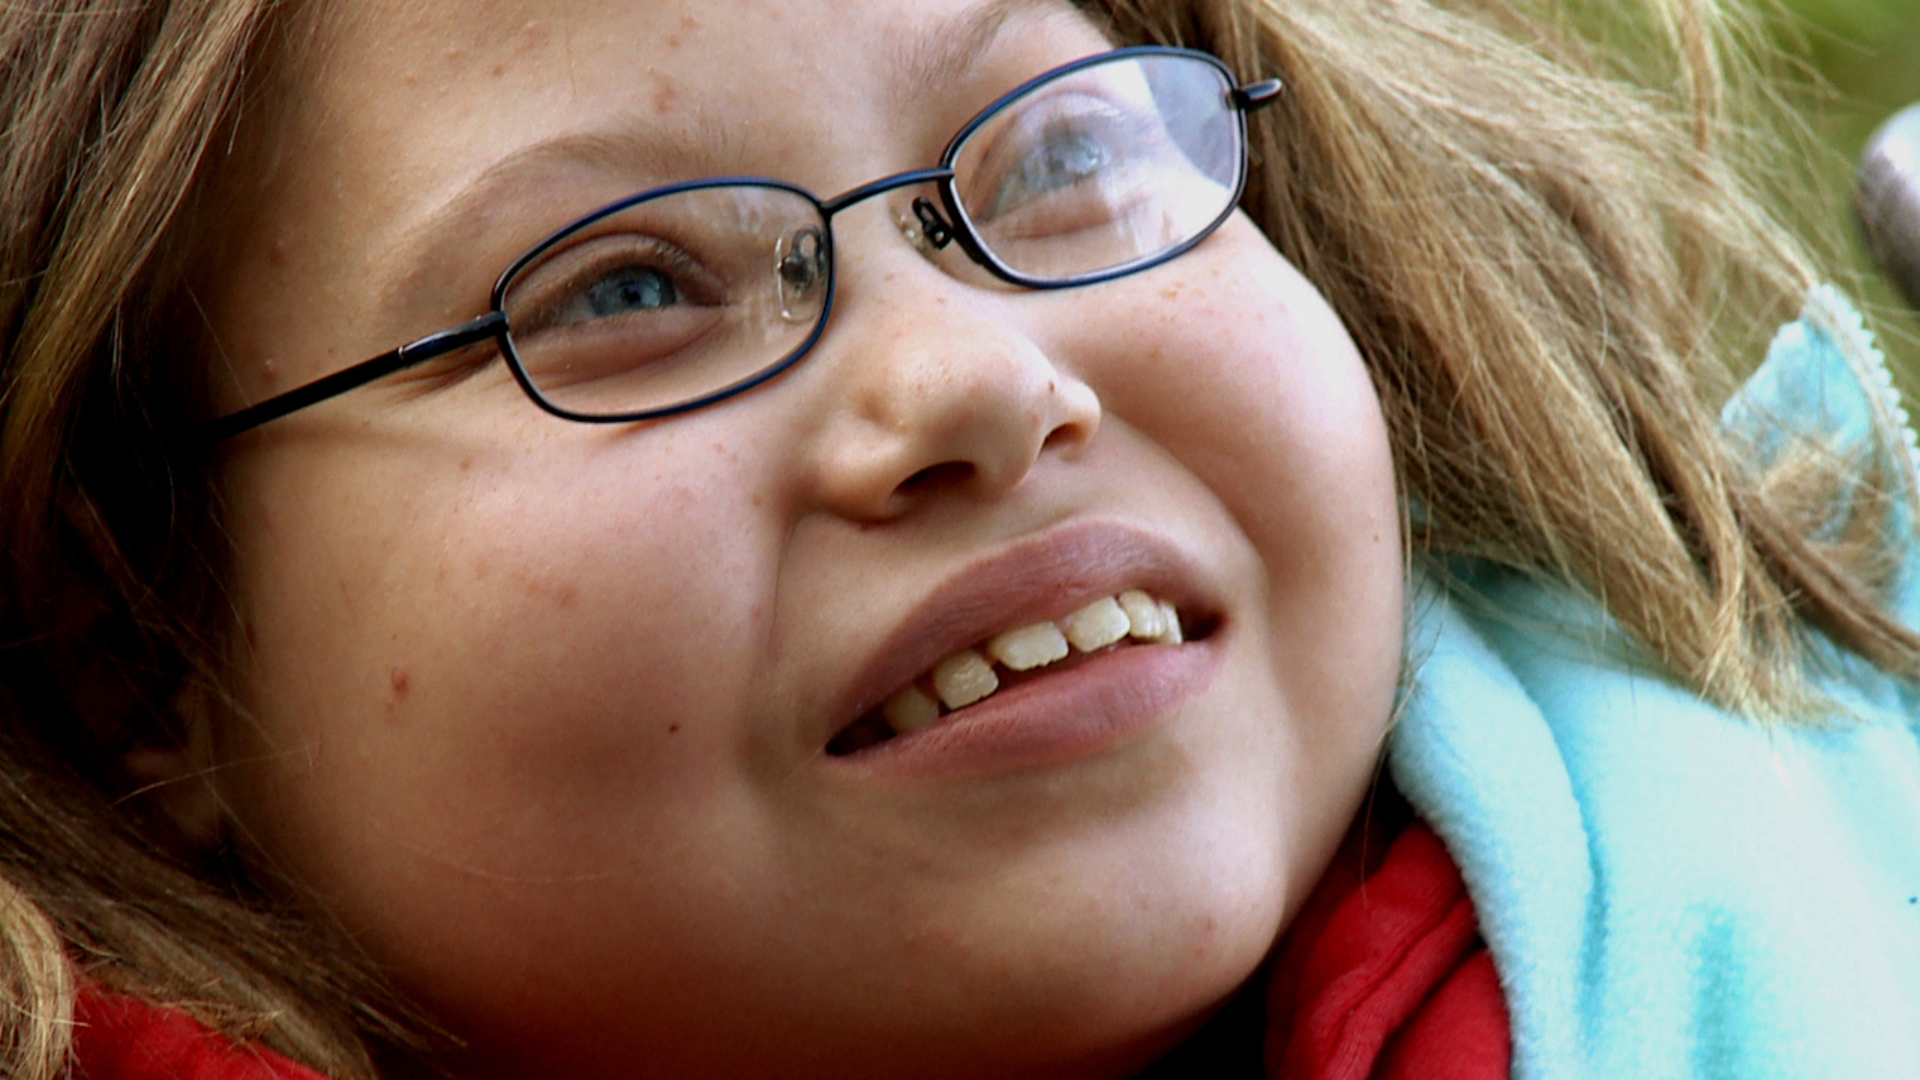 Arianna Evans   Age 14 Spina Bifida, kidney failure Wish: Merriam's Turkey, South Dakota  Arianna has an unwavering smile that shows a strength undaunted by her constant struggles to survive. Born with Spina Bifida and waiting on a kidney transplant, Arianna is limited to a wheel chair, requires daily dialysis, and constantly battles infection. However, growing up in a hunting family has instilled Arianna with a love for the outdoors and afforded her opportunities to hunt with the best of them. Hunt of a Lifetime sent Arianna on a Merriam's Turkey hunt in Custer, South Dakota. Accompanied by her parents, Bill and Laura, her siblings, and a TV crew for a hunting network, Arianna spent a week in the Black Hills on the lookout for a respectable gobbler.